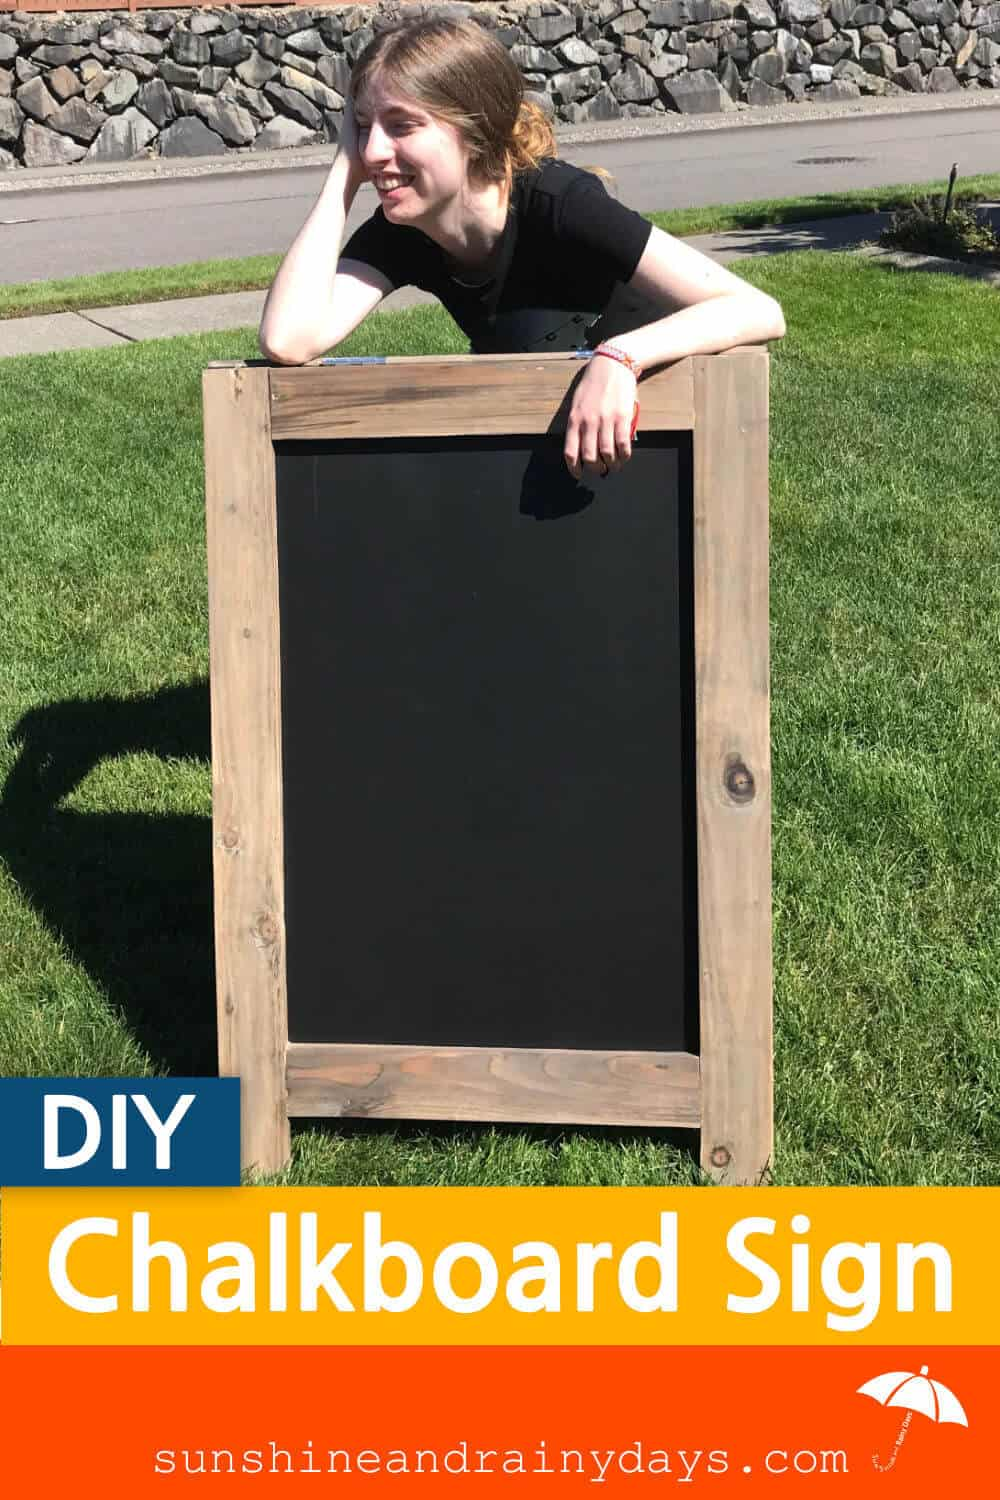 Build a chalkboard sign!